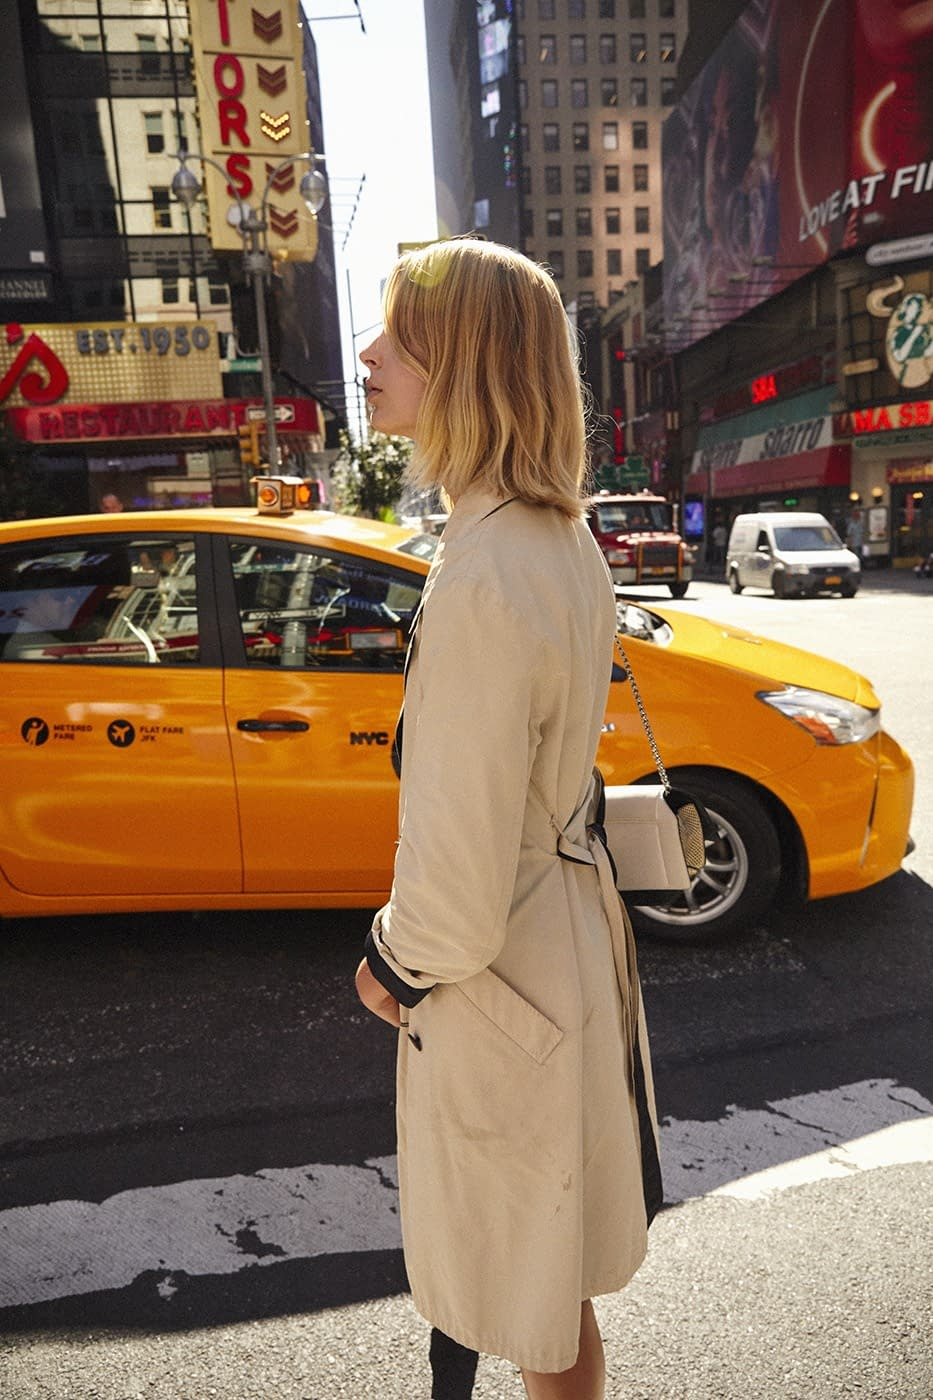 KYLIE NEW YORK BY ENRIC GALCERAN - PHOTO 13